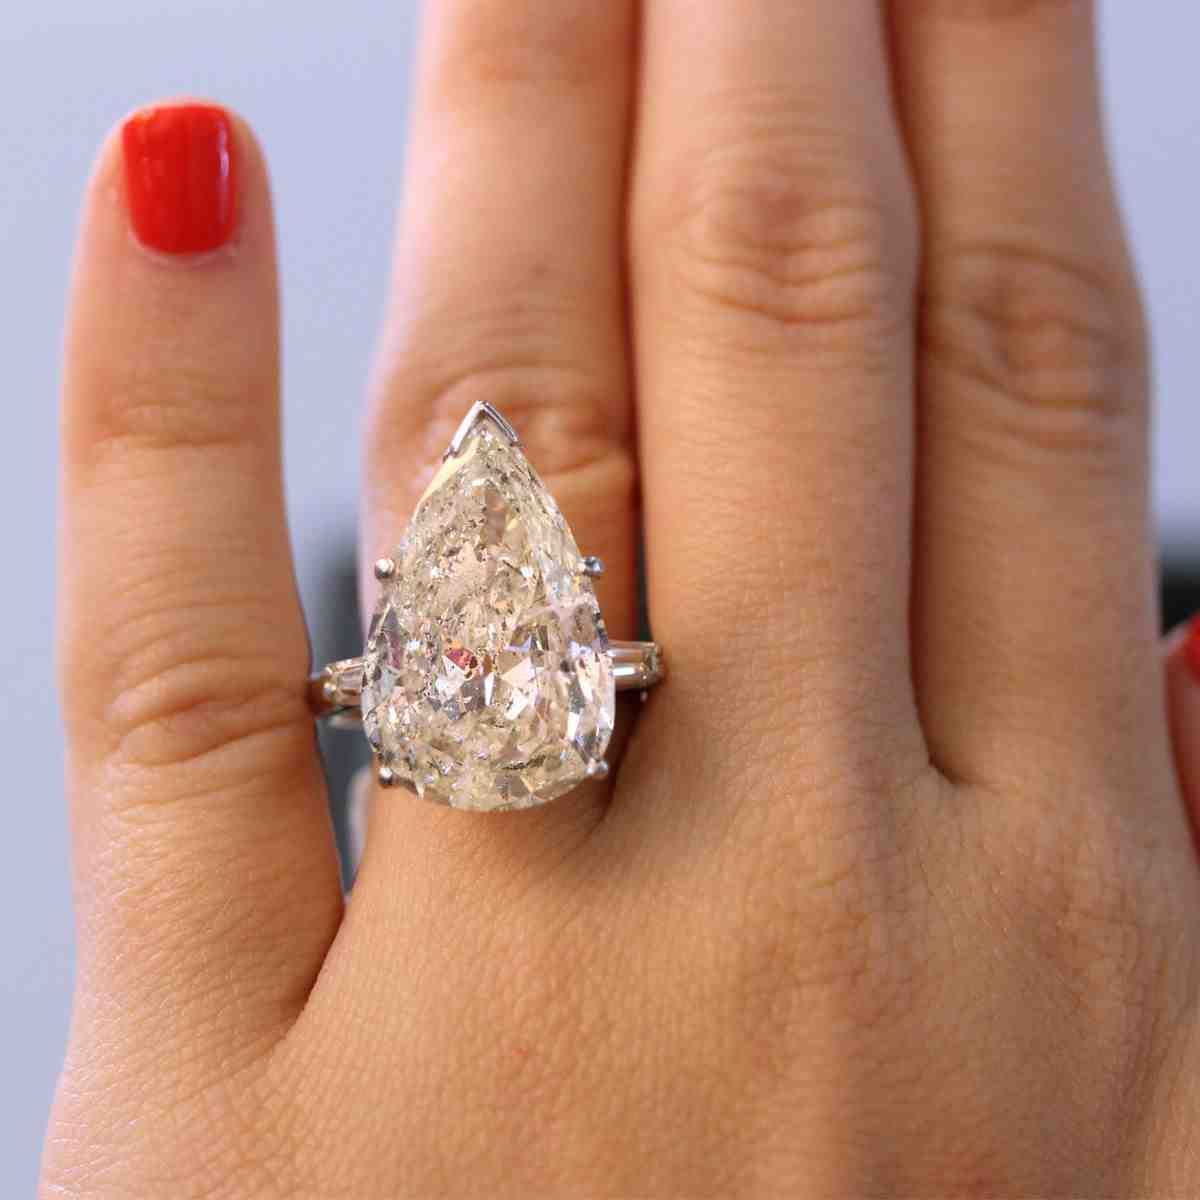 Big Expensive Engagement Rings Dream Jewelry Pinterest